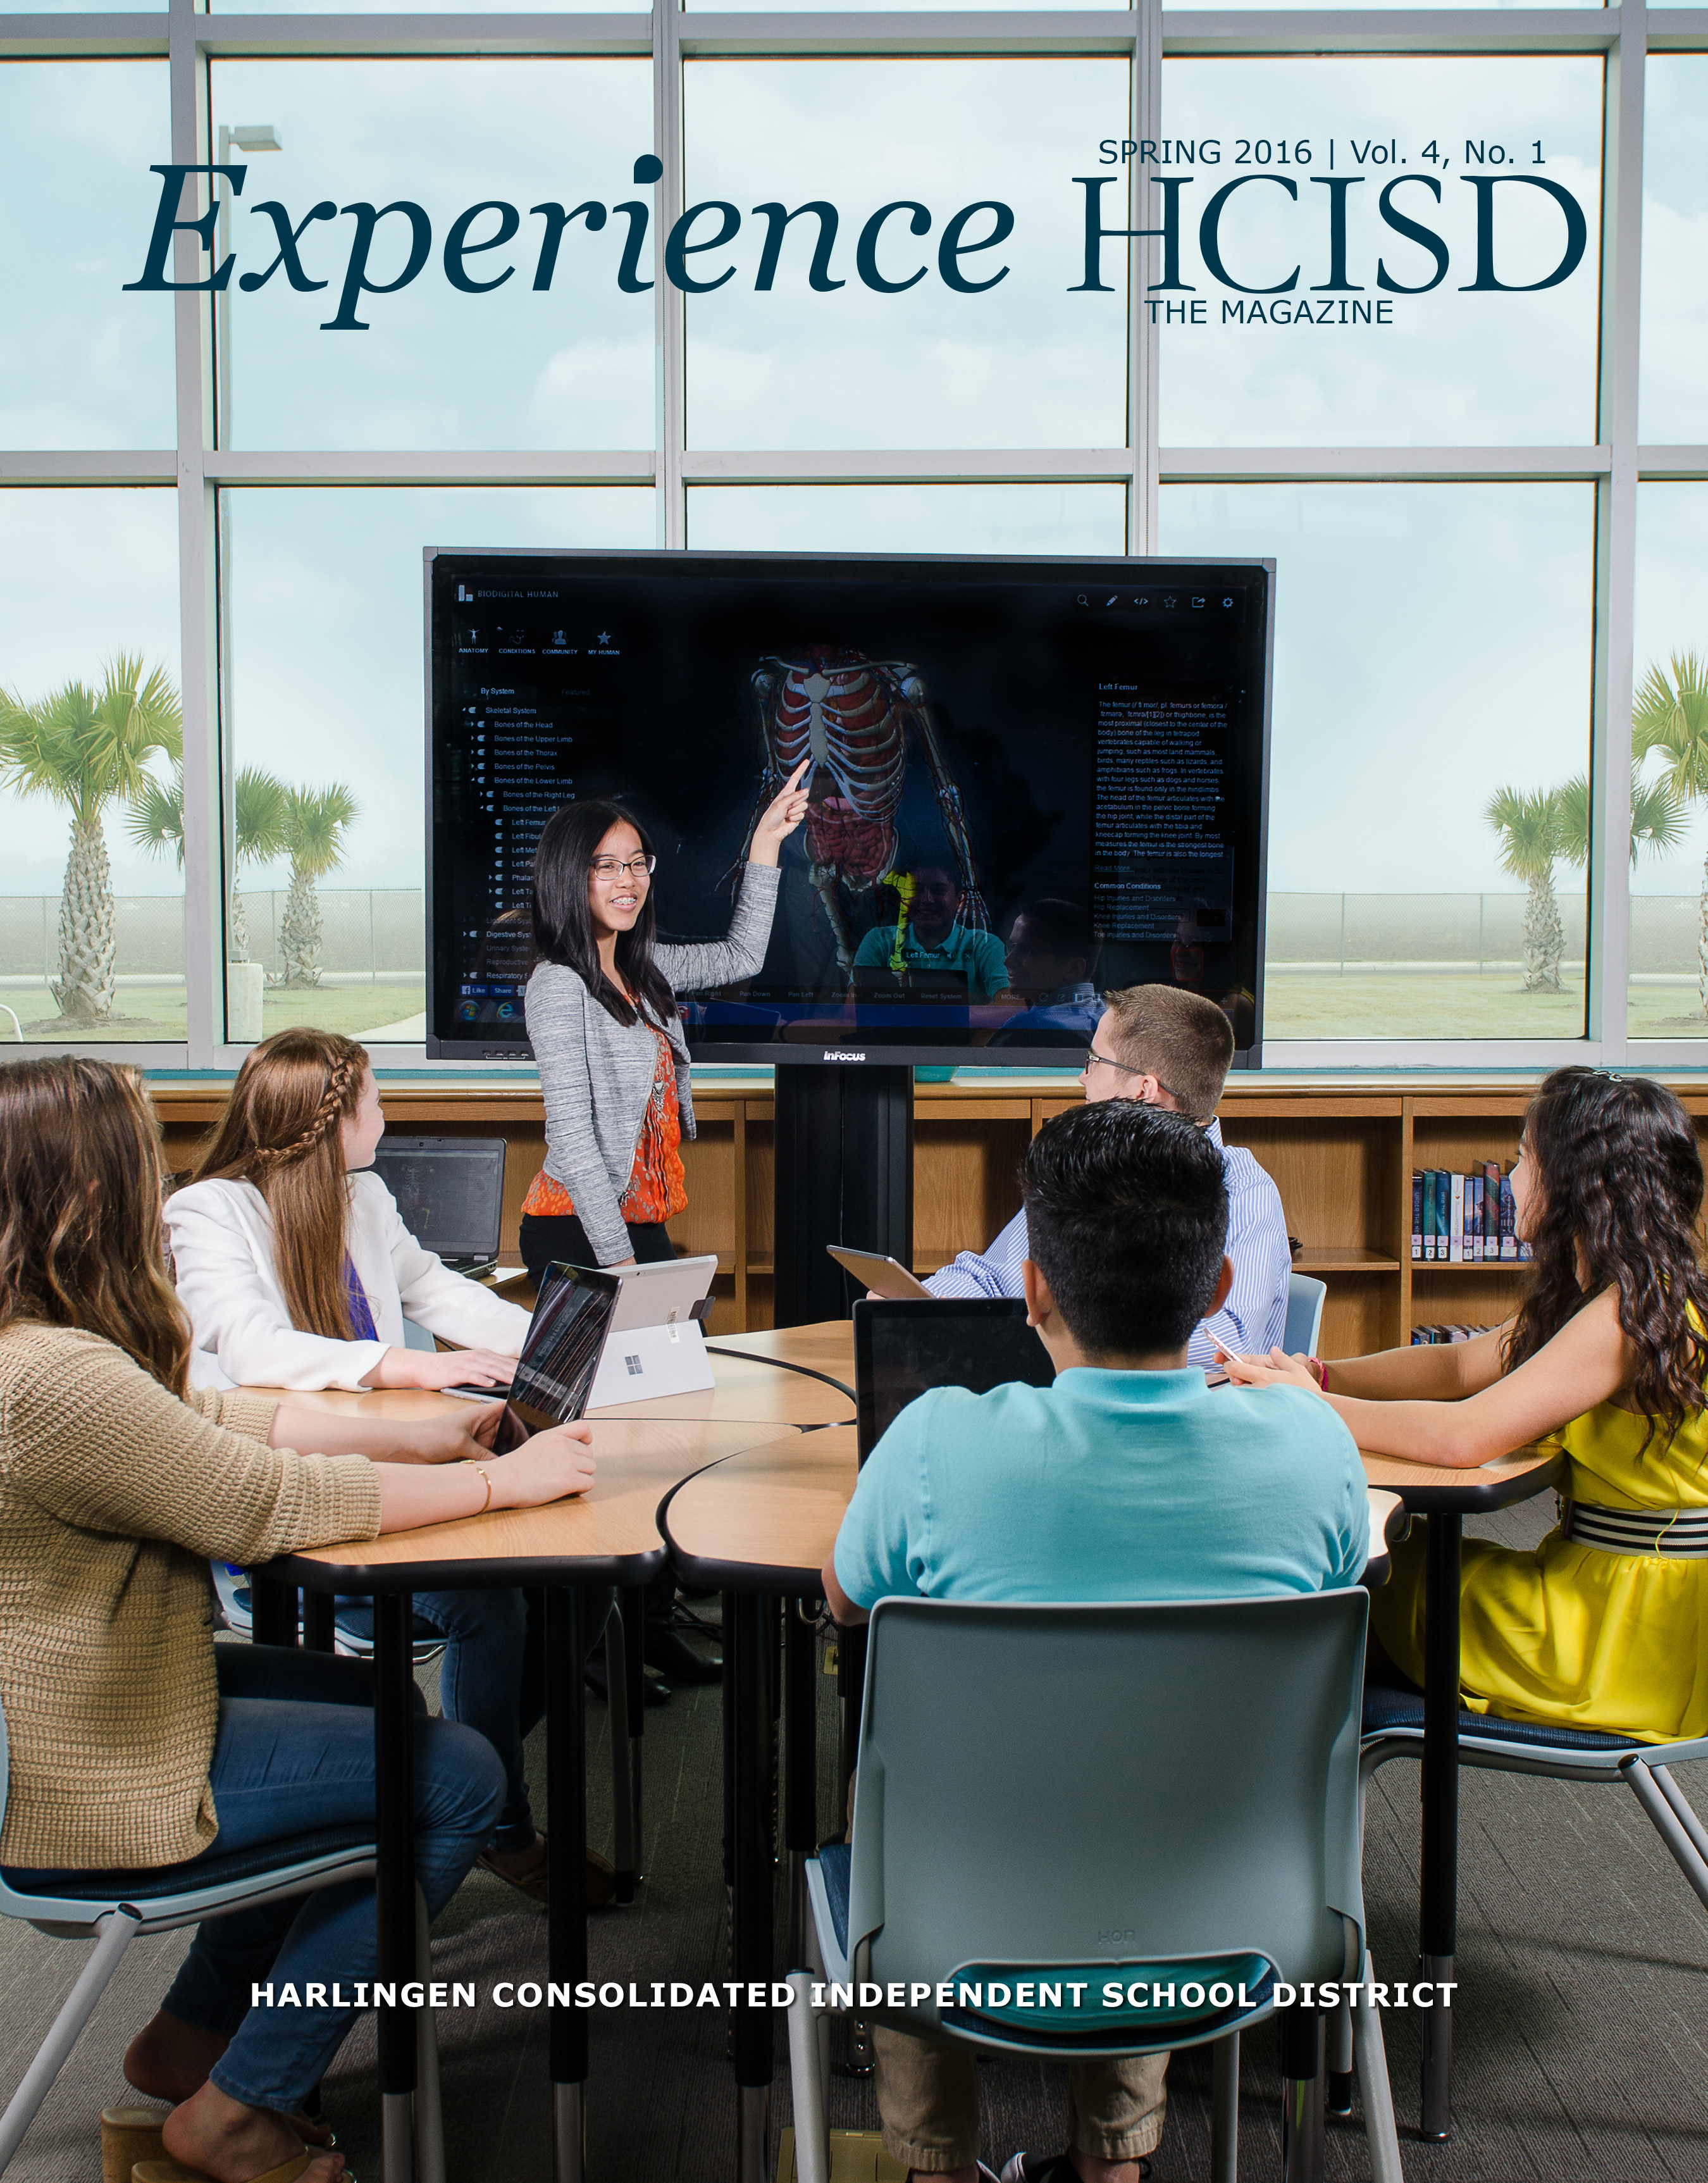 HCISD releases issue 6 of Experience HCISD The Magazine